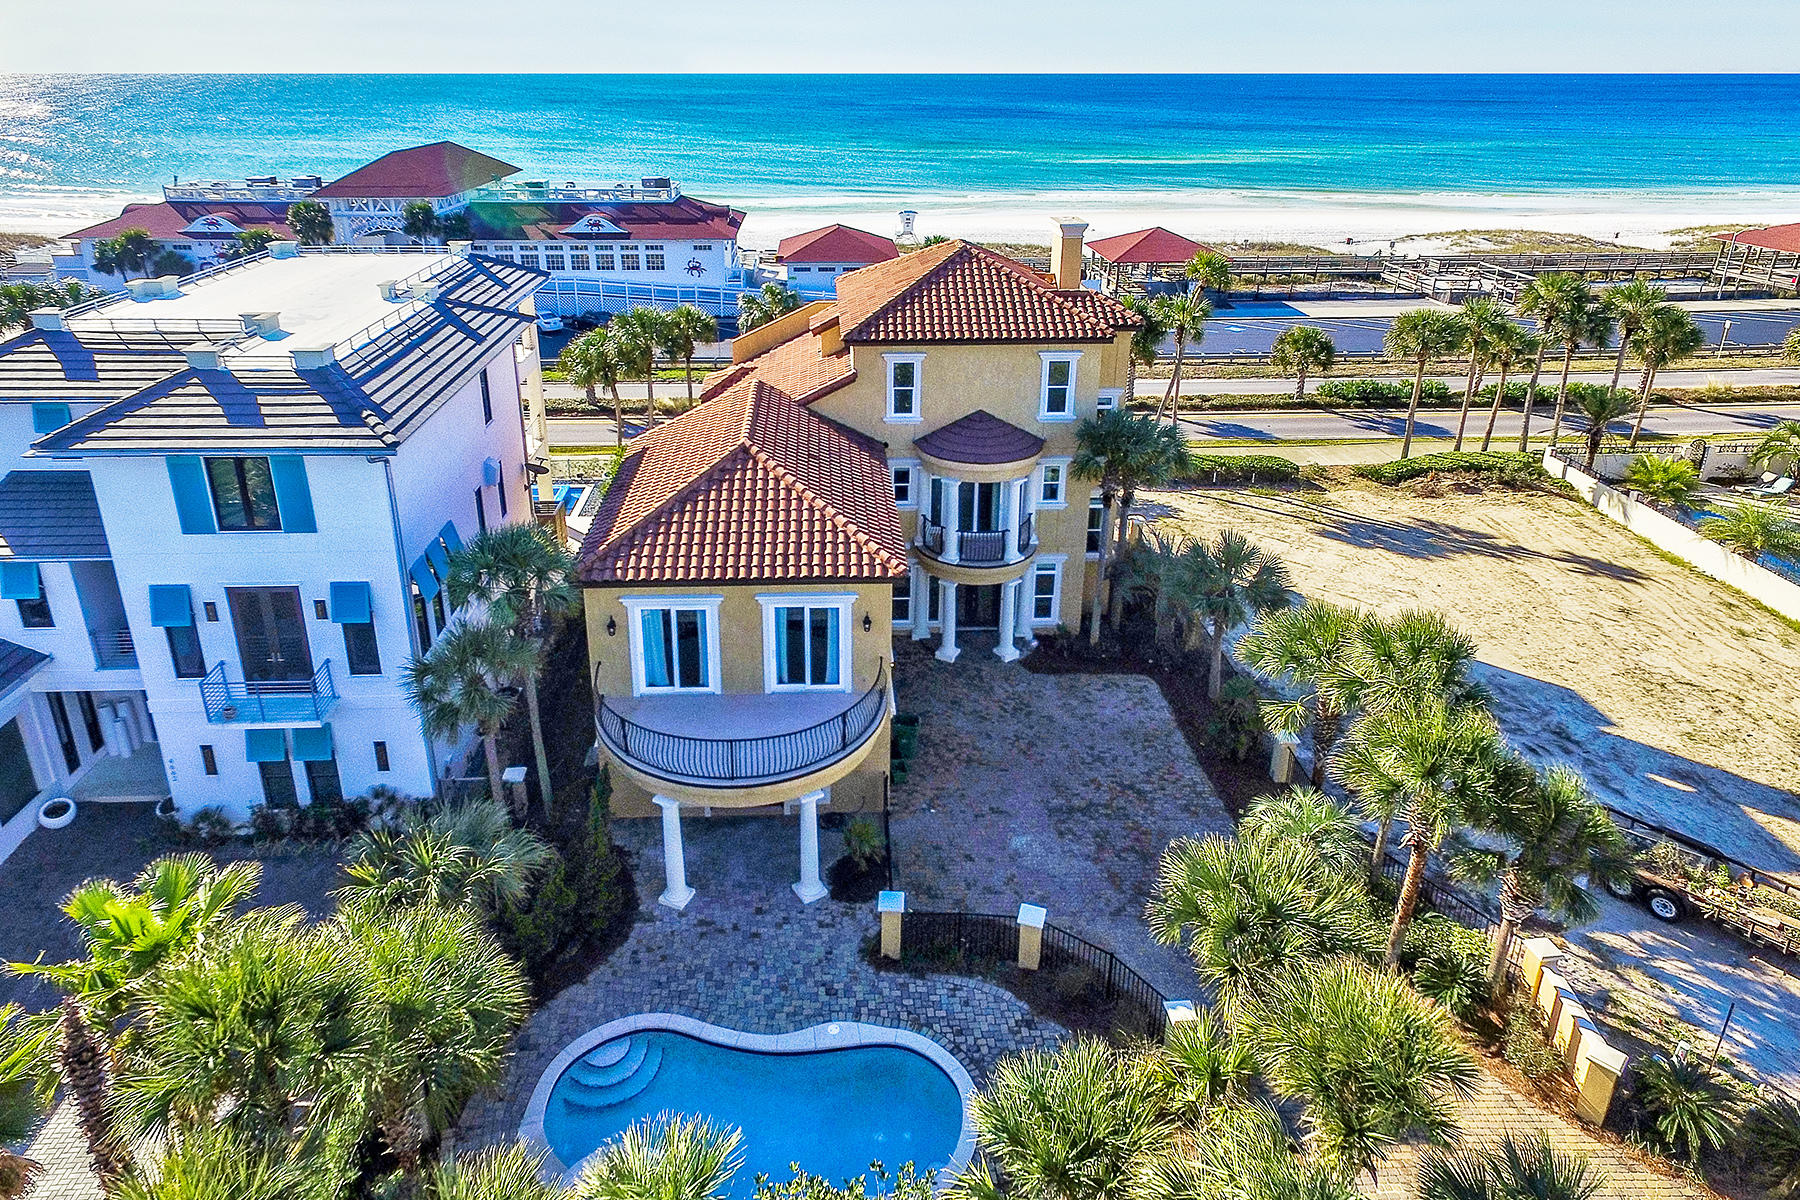 Tek Ailelik Ev için Satış at BEACH SIDE MANOR WITH UNOBSTRUCTED GULF VIEWS 4660 Destiny Way Destin, Florida 32541 Amerika Birleşik Devletleri